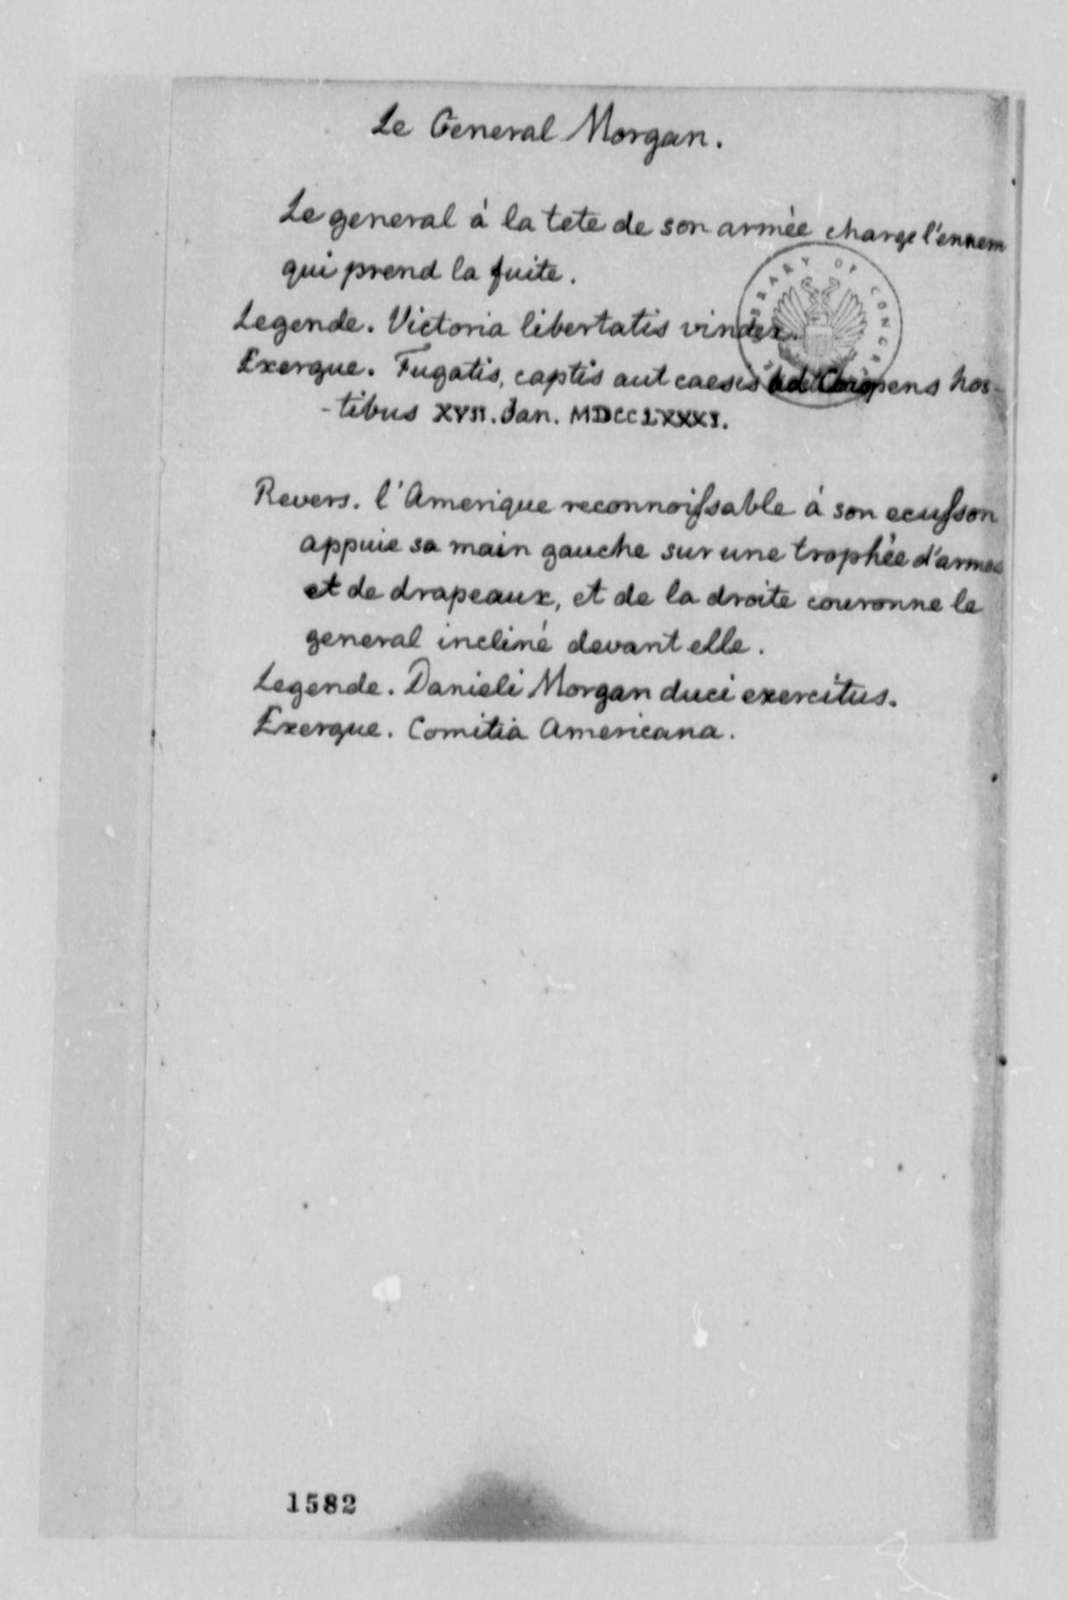 Thomas Jefferson, 1787, Memorandum on Medals for George Washington, et al; in English and French